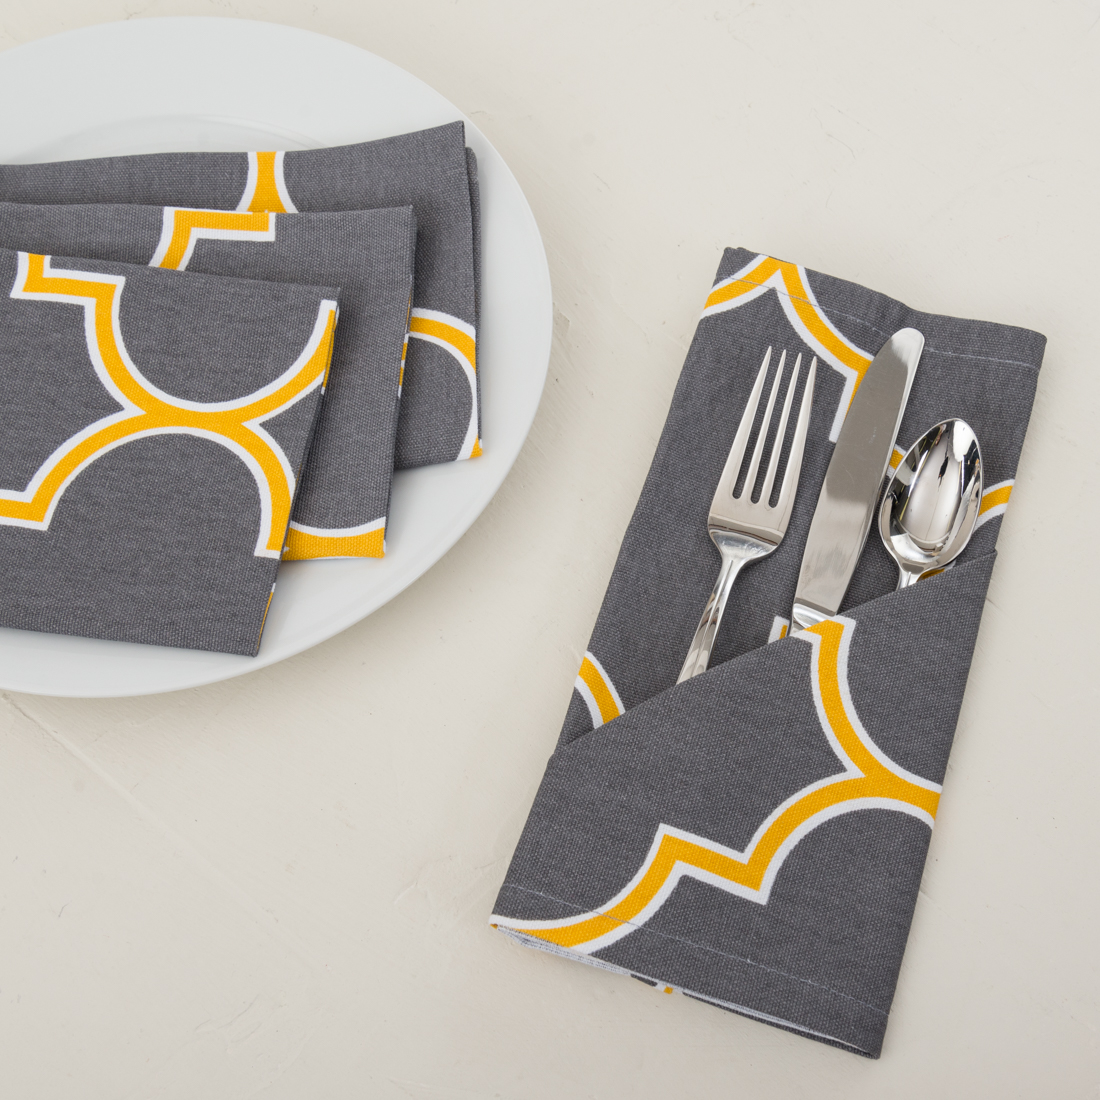 20 in. Charcoal & Mustard Yellow Trellis Cotton Napkins 4 pack by